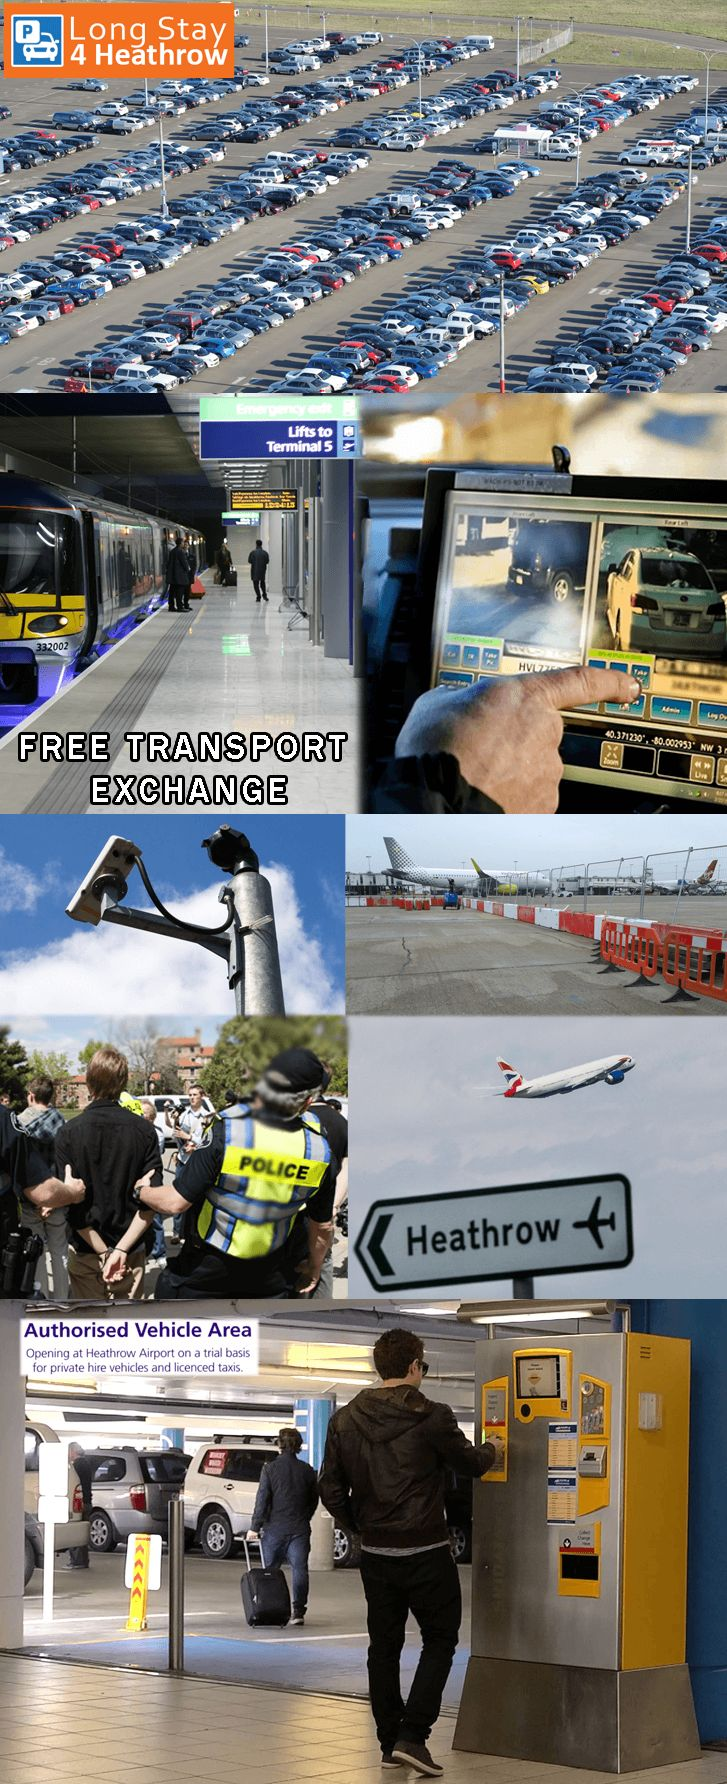 88 best heathrow terminal 5 parking images on pinterest why heathrow long stay parking is first choice of customers parking 4 airport heathrow kristyandbryce Images